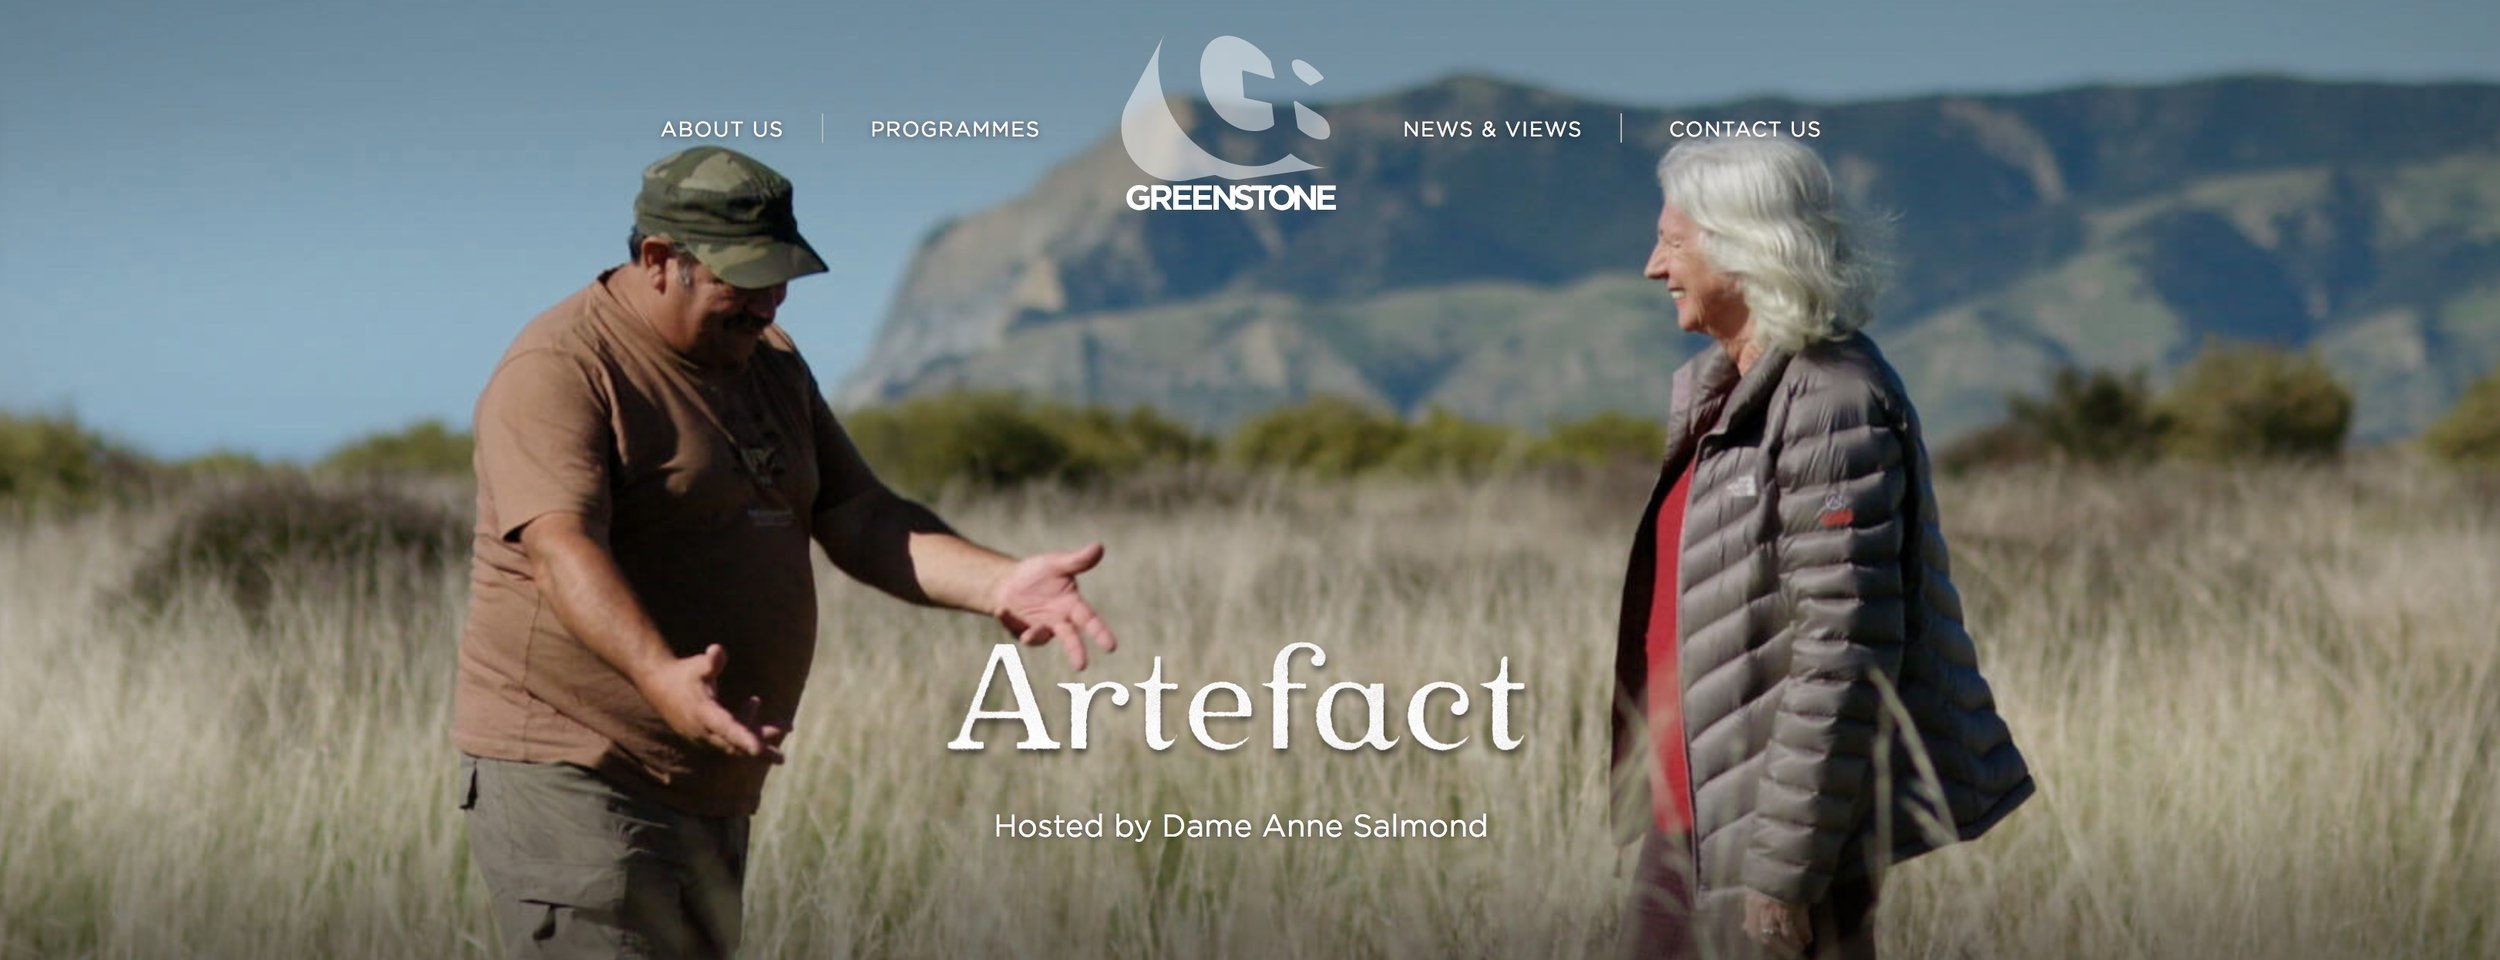 Image from  http://www.greenstonetv.com/our-programmes/artefact/